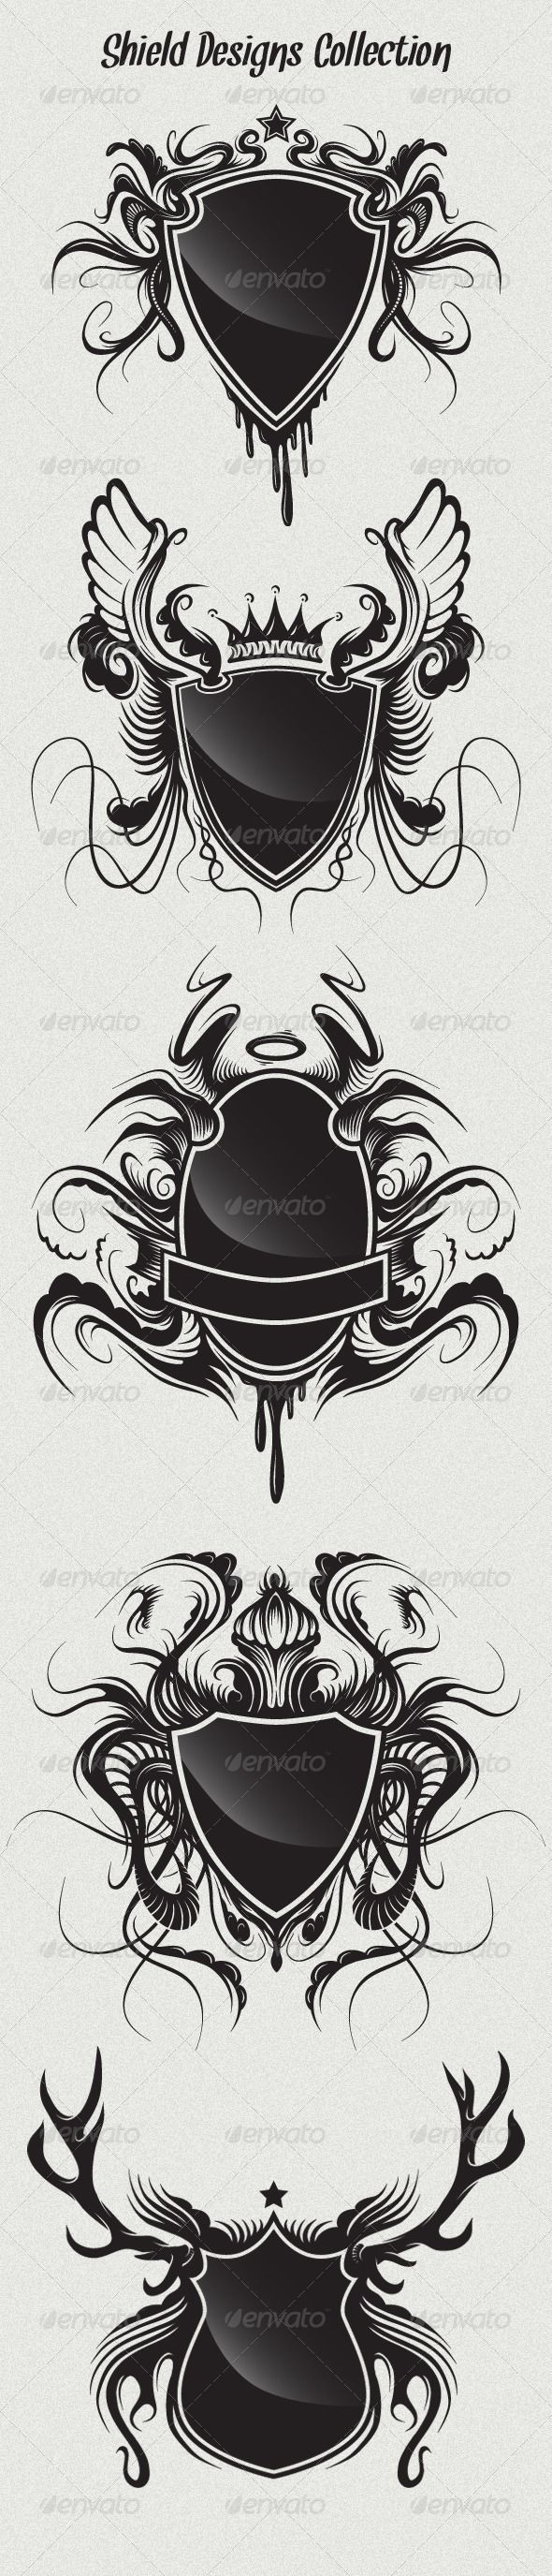 Searching for some dark vector shields for your designs?! ---> Shield Designs Collection